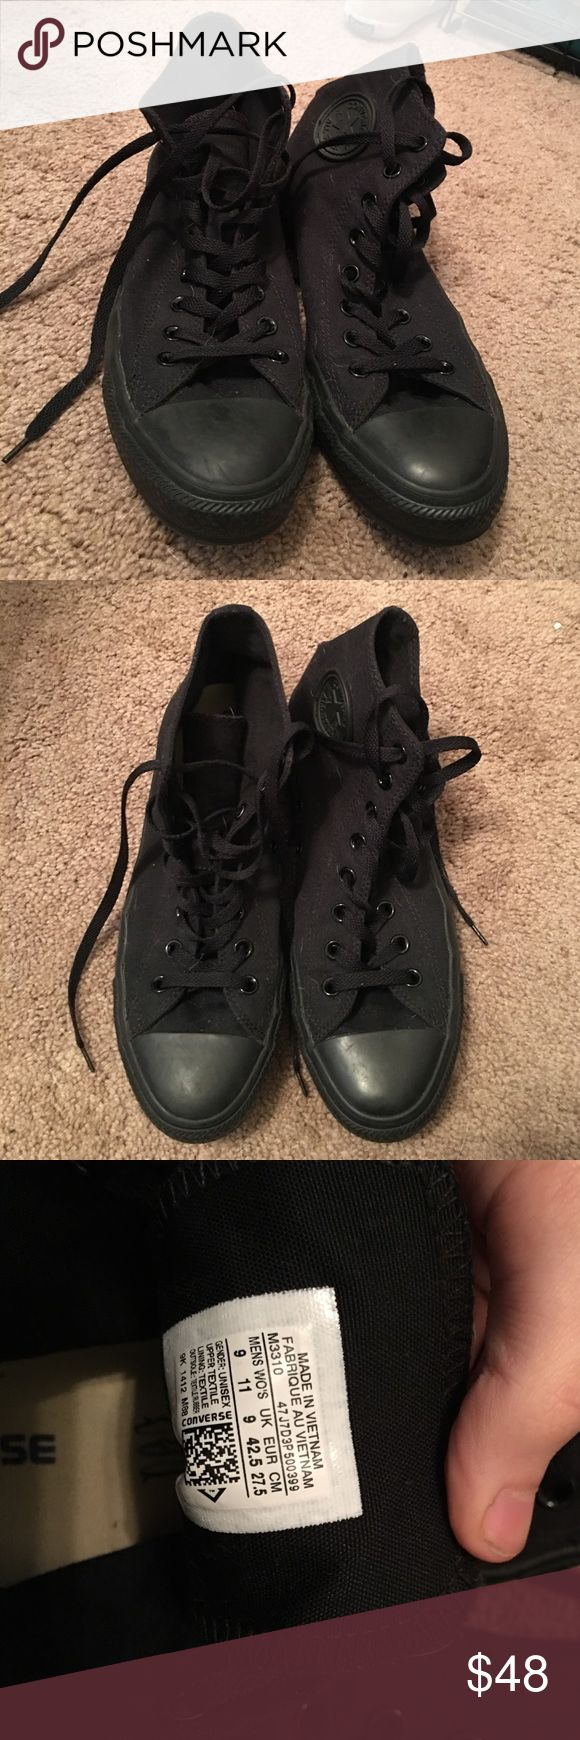 Black Converse Hightops Like new black high top converse, only worn a handful of times. They are a men's 9 or a woman's 11. Open to offers :) Converse Shoes Sneakers